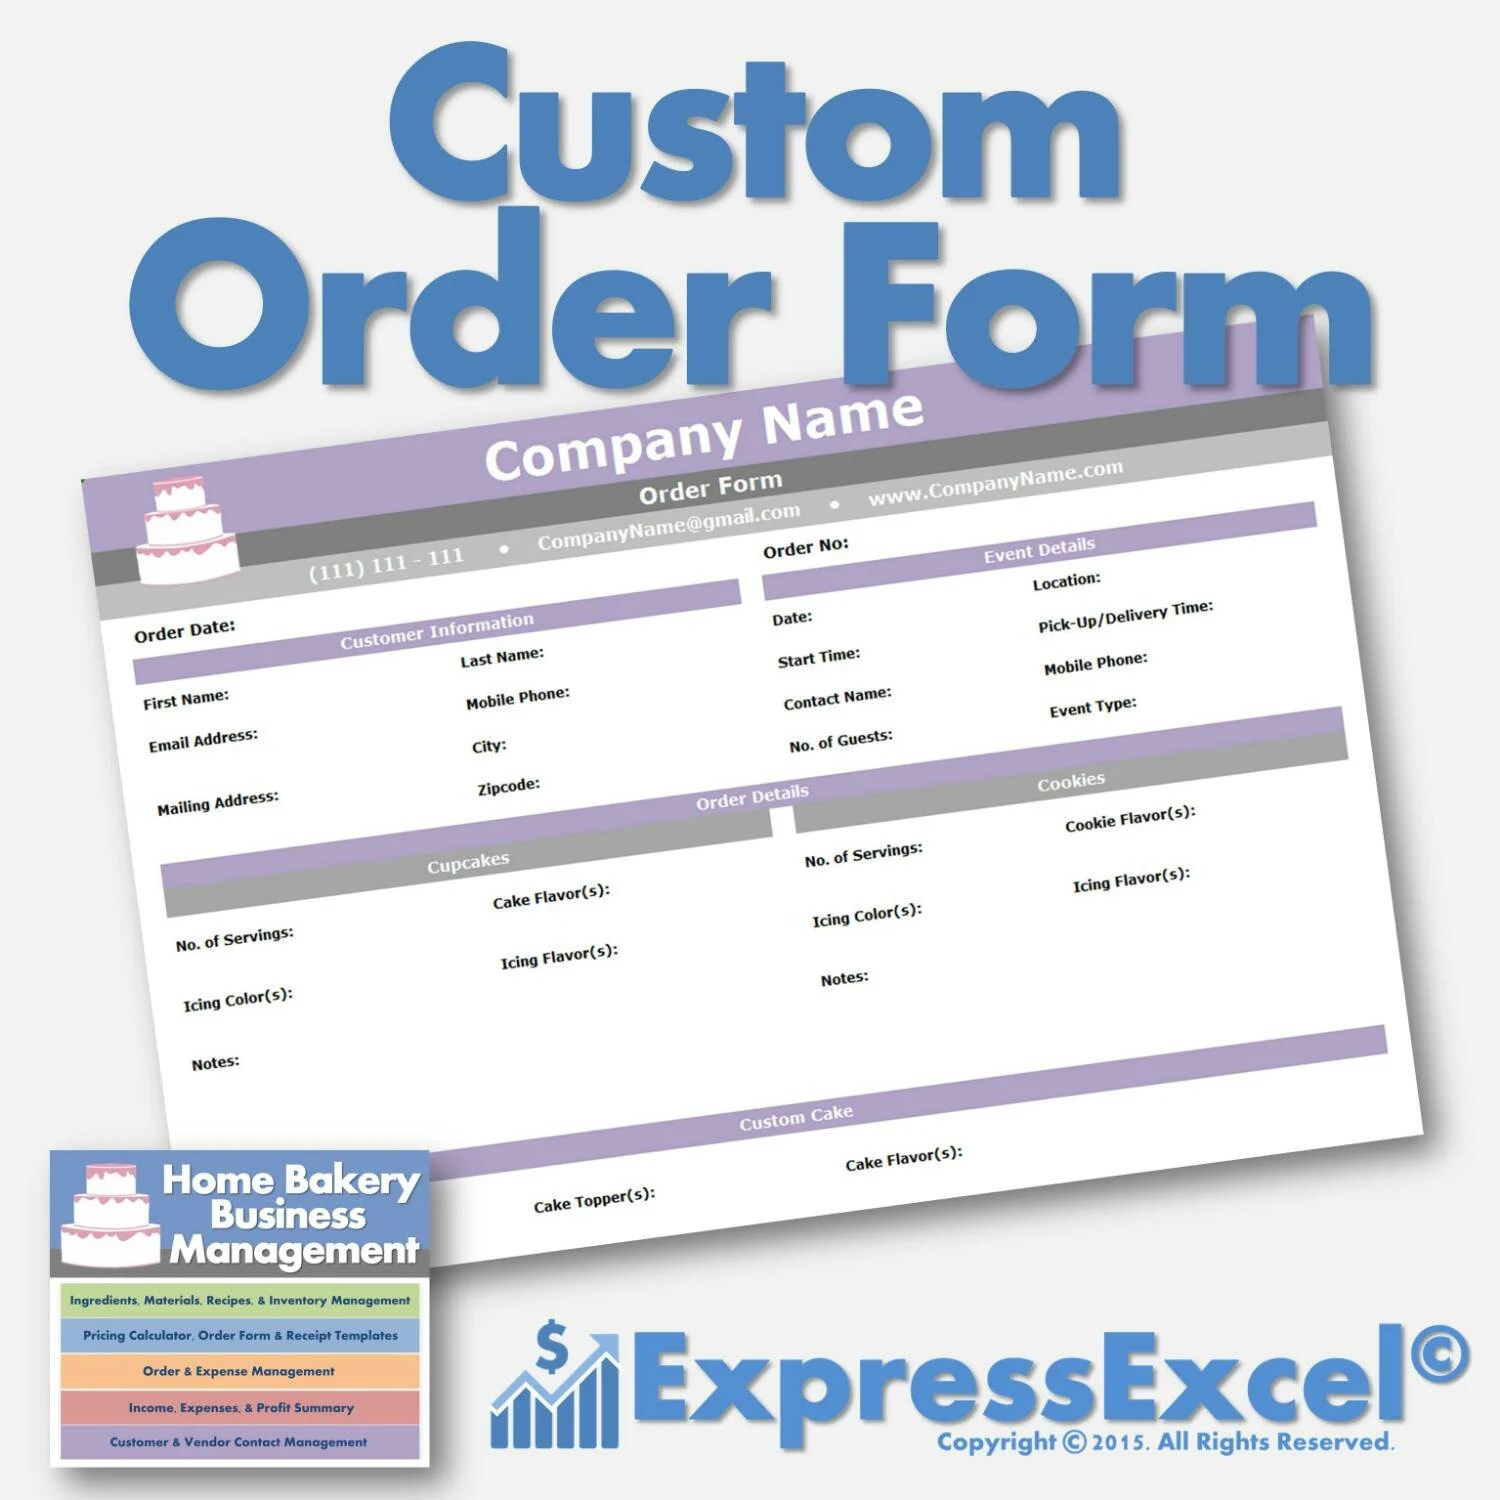 Cake, Cupcake, and Cookie Decorating Business Printable Order Form